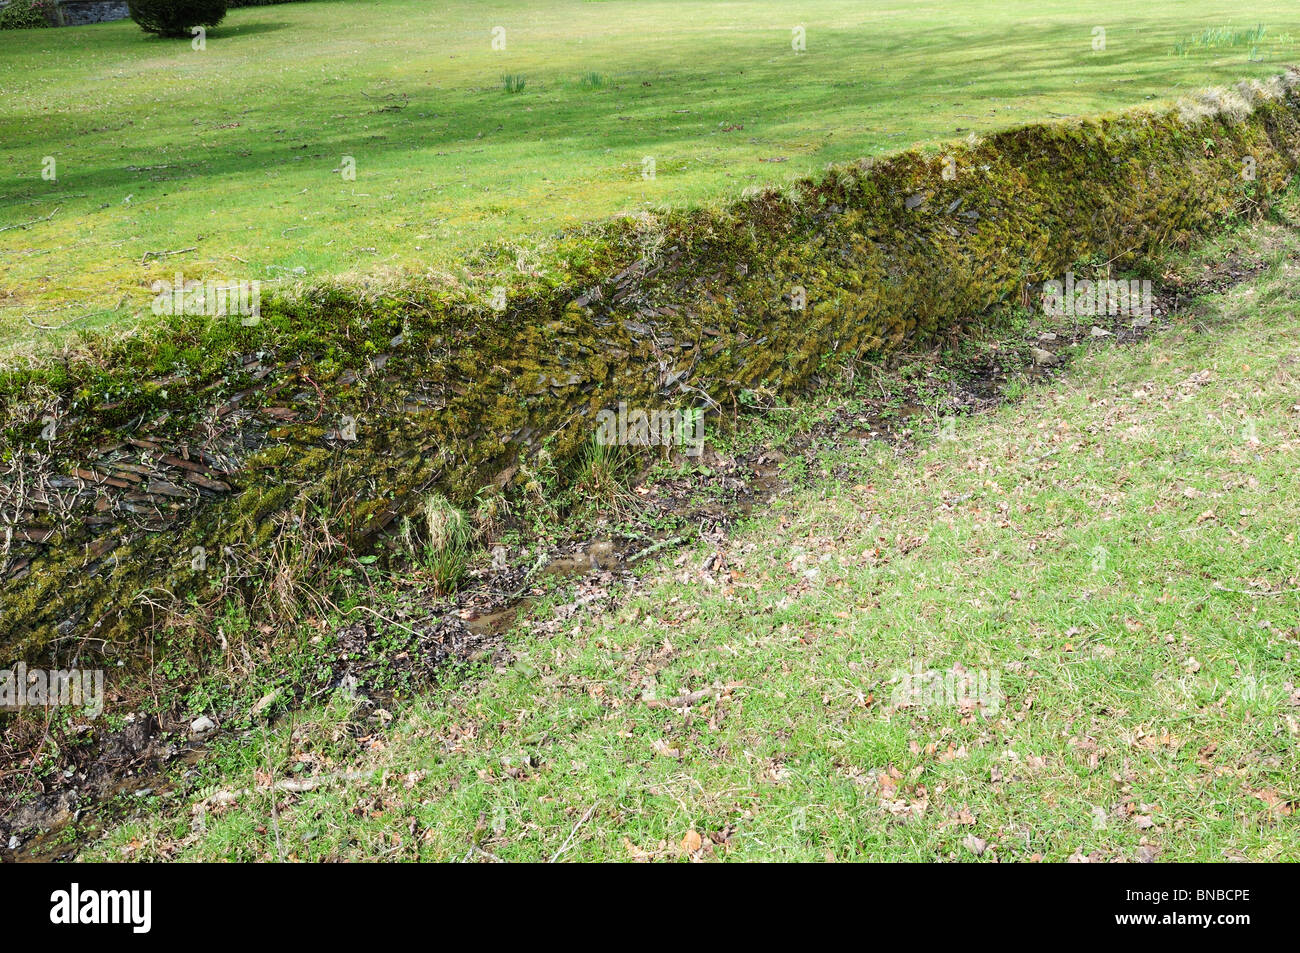 A Ha-ha a garden design trench -a fence concealed to protect the view Ceredigion Wales Cymru K GB - Stock Image